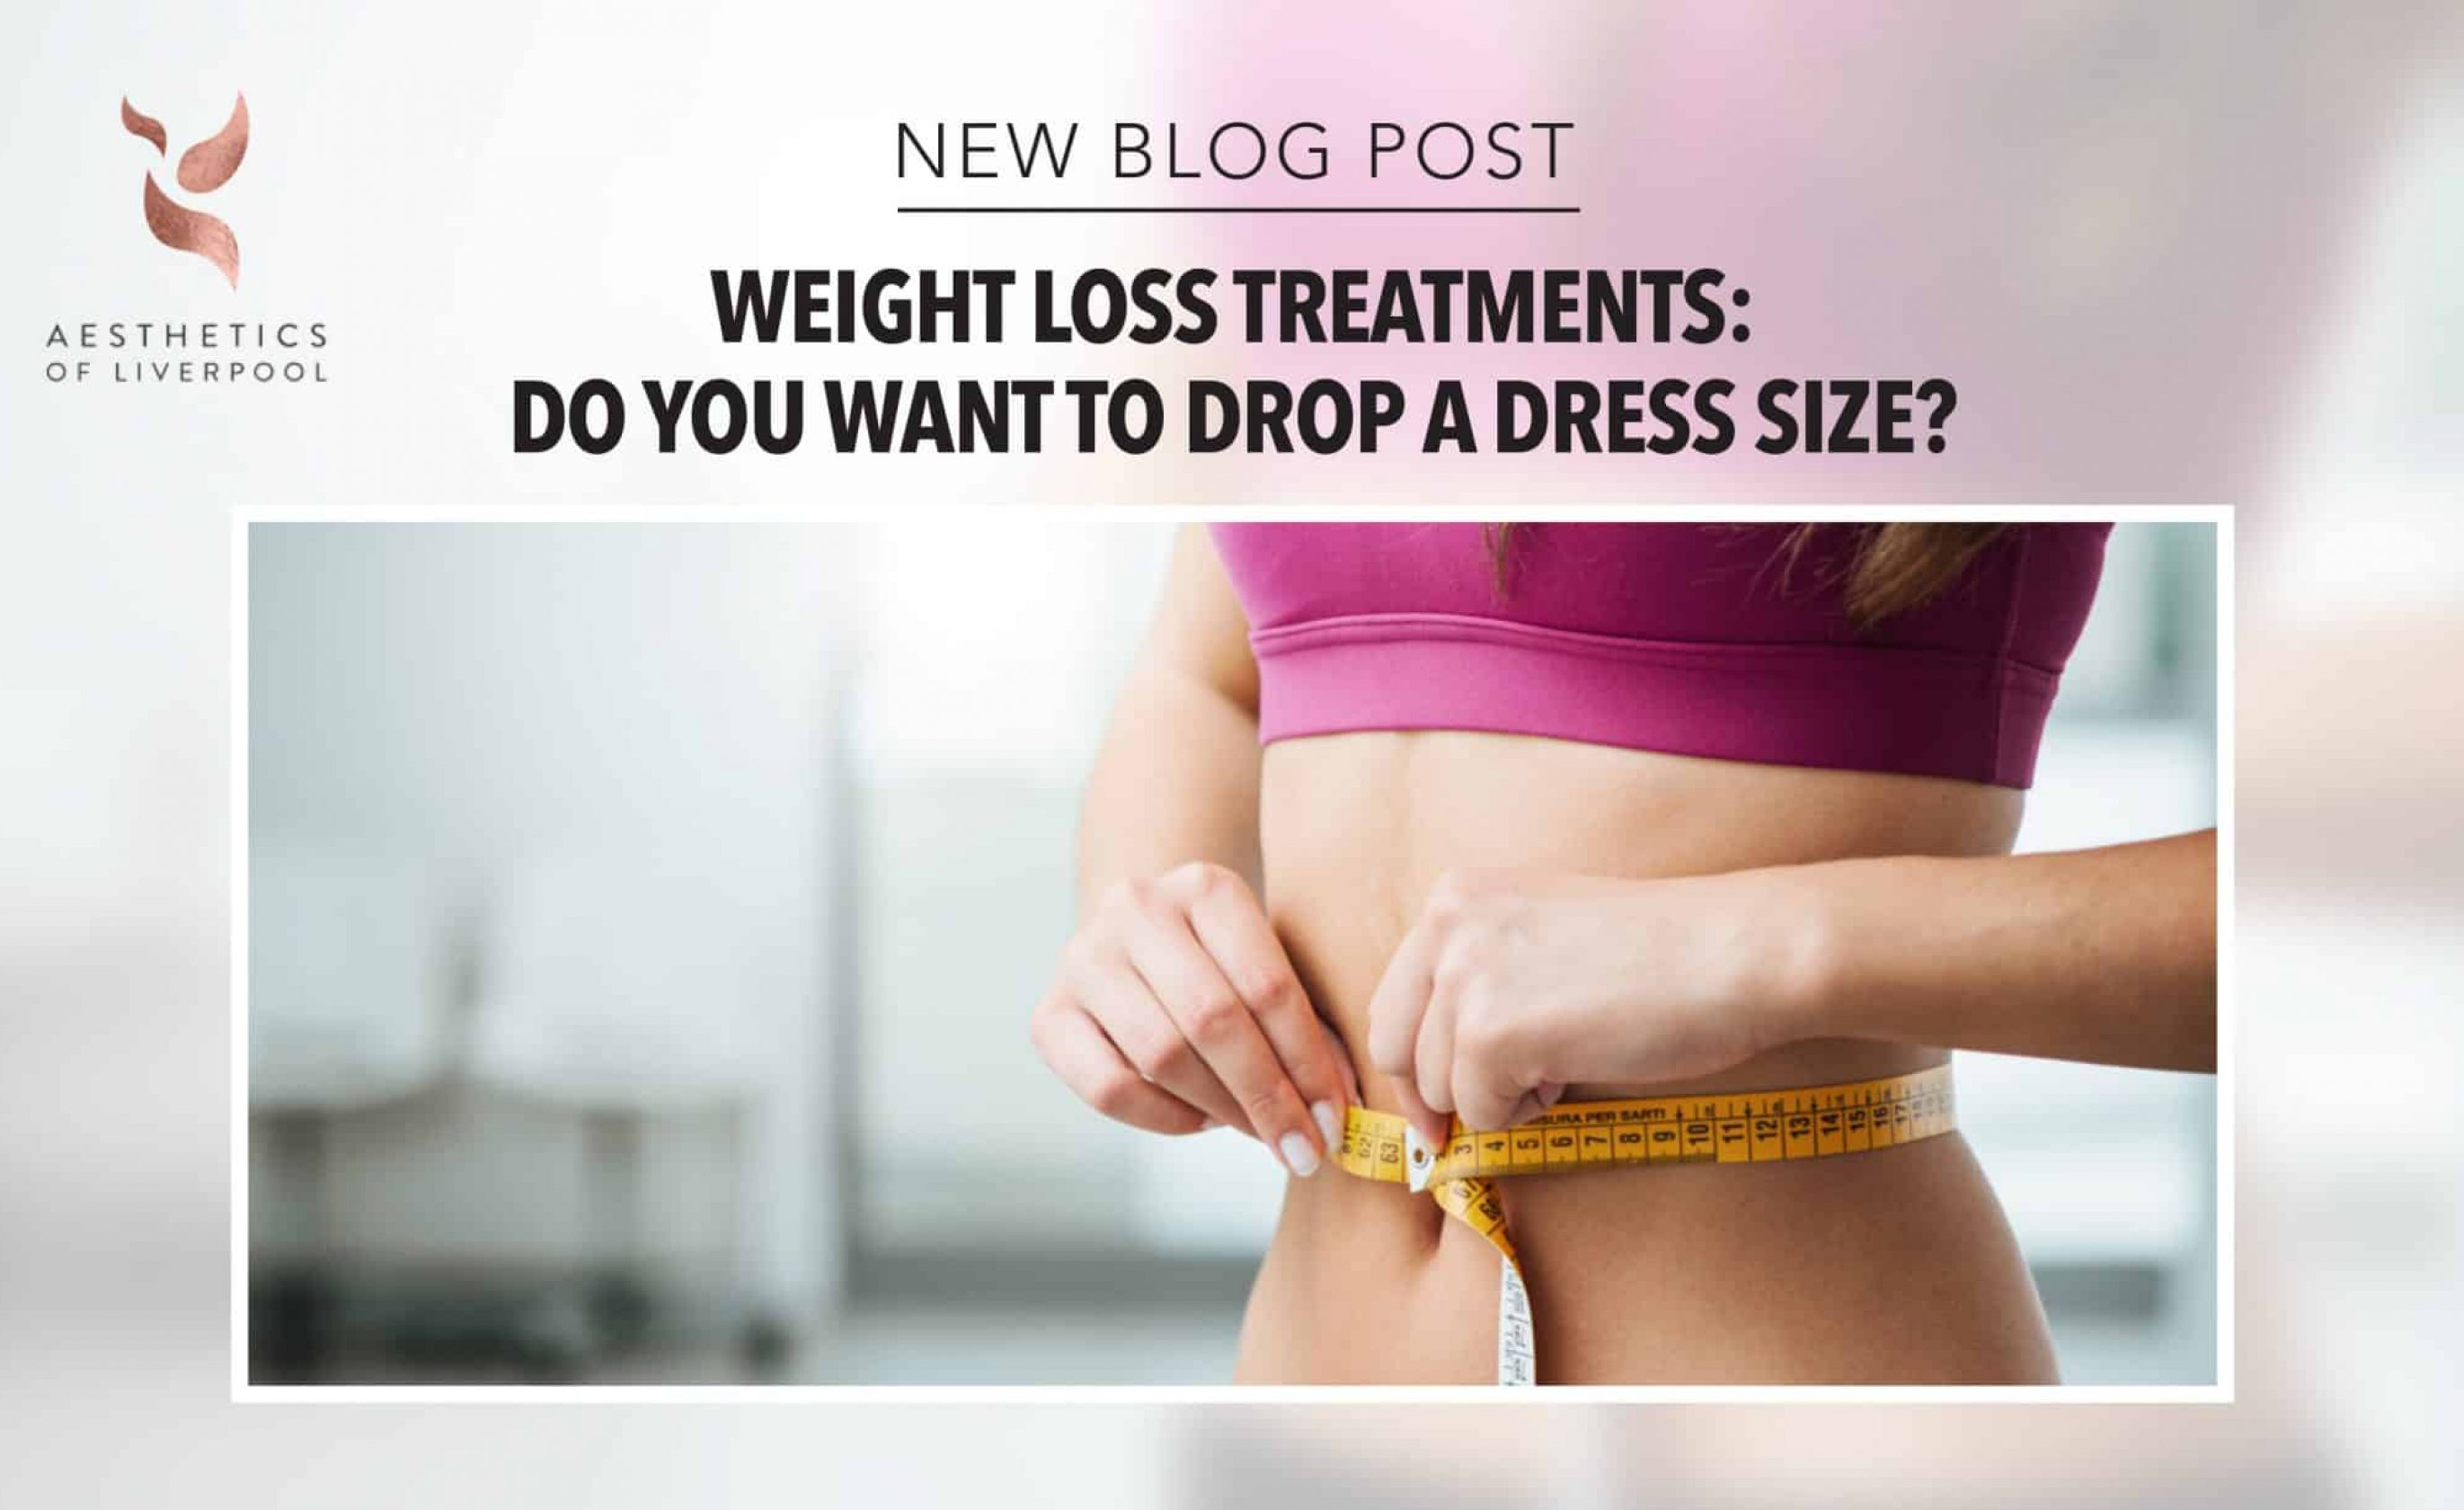 Weight Loss Treatments: Do You Want To Drop a Dress Size?